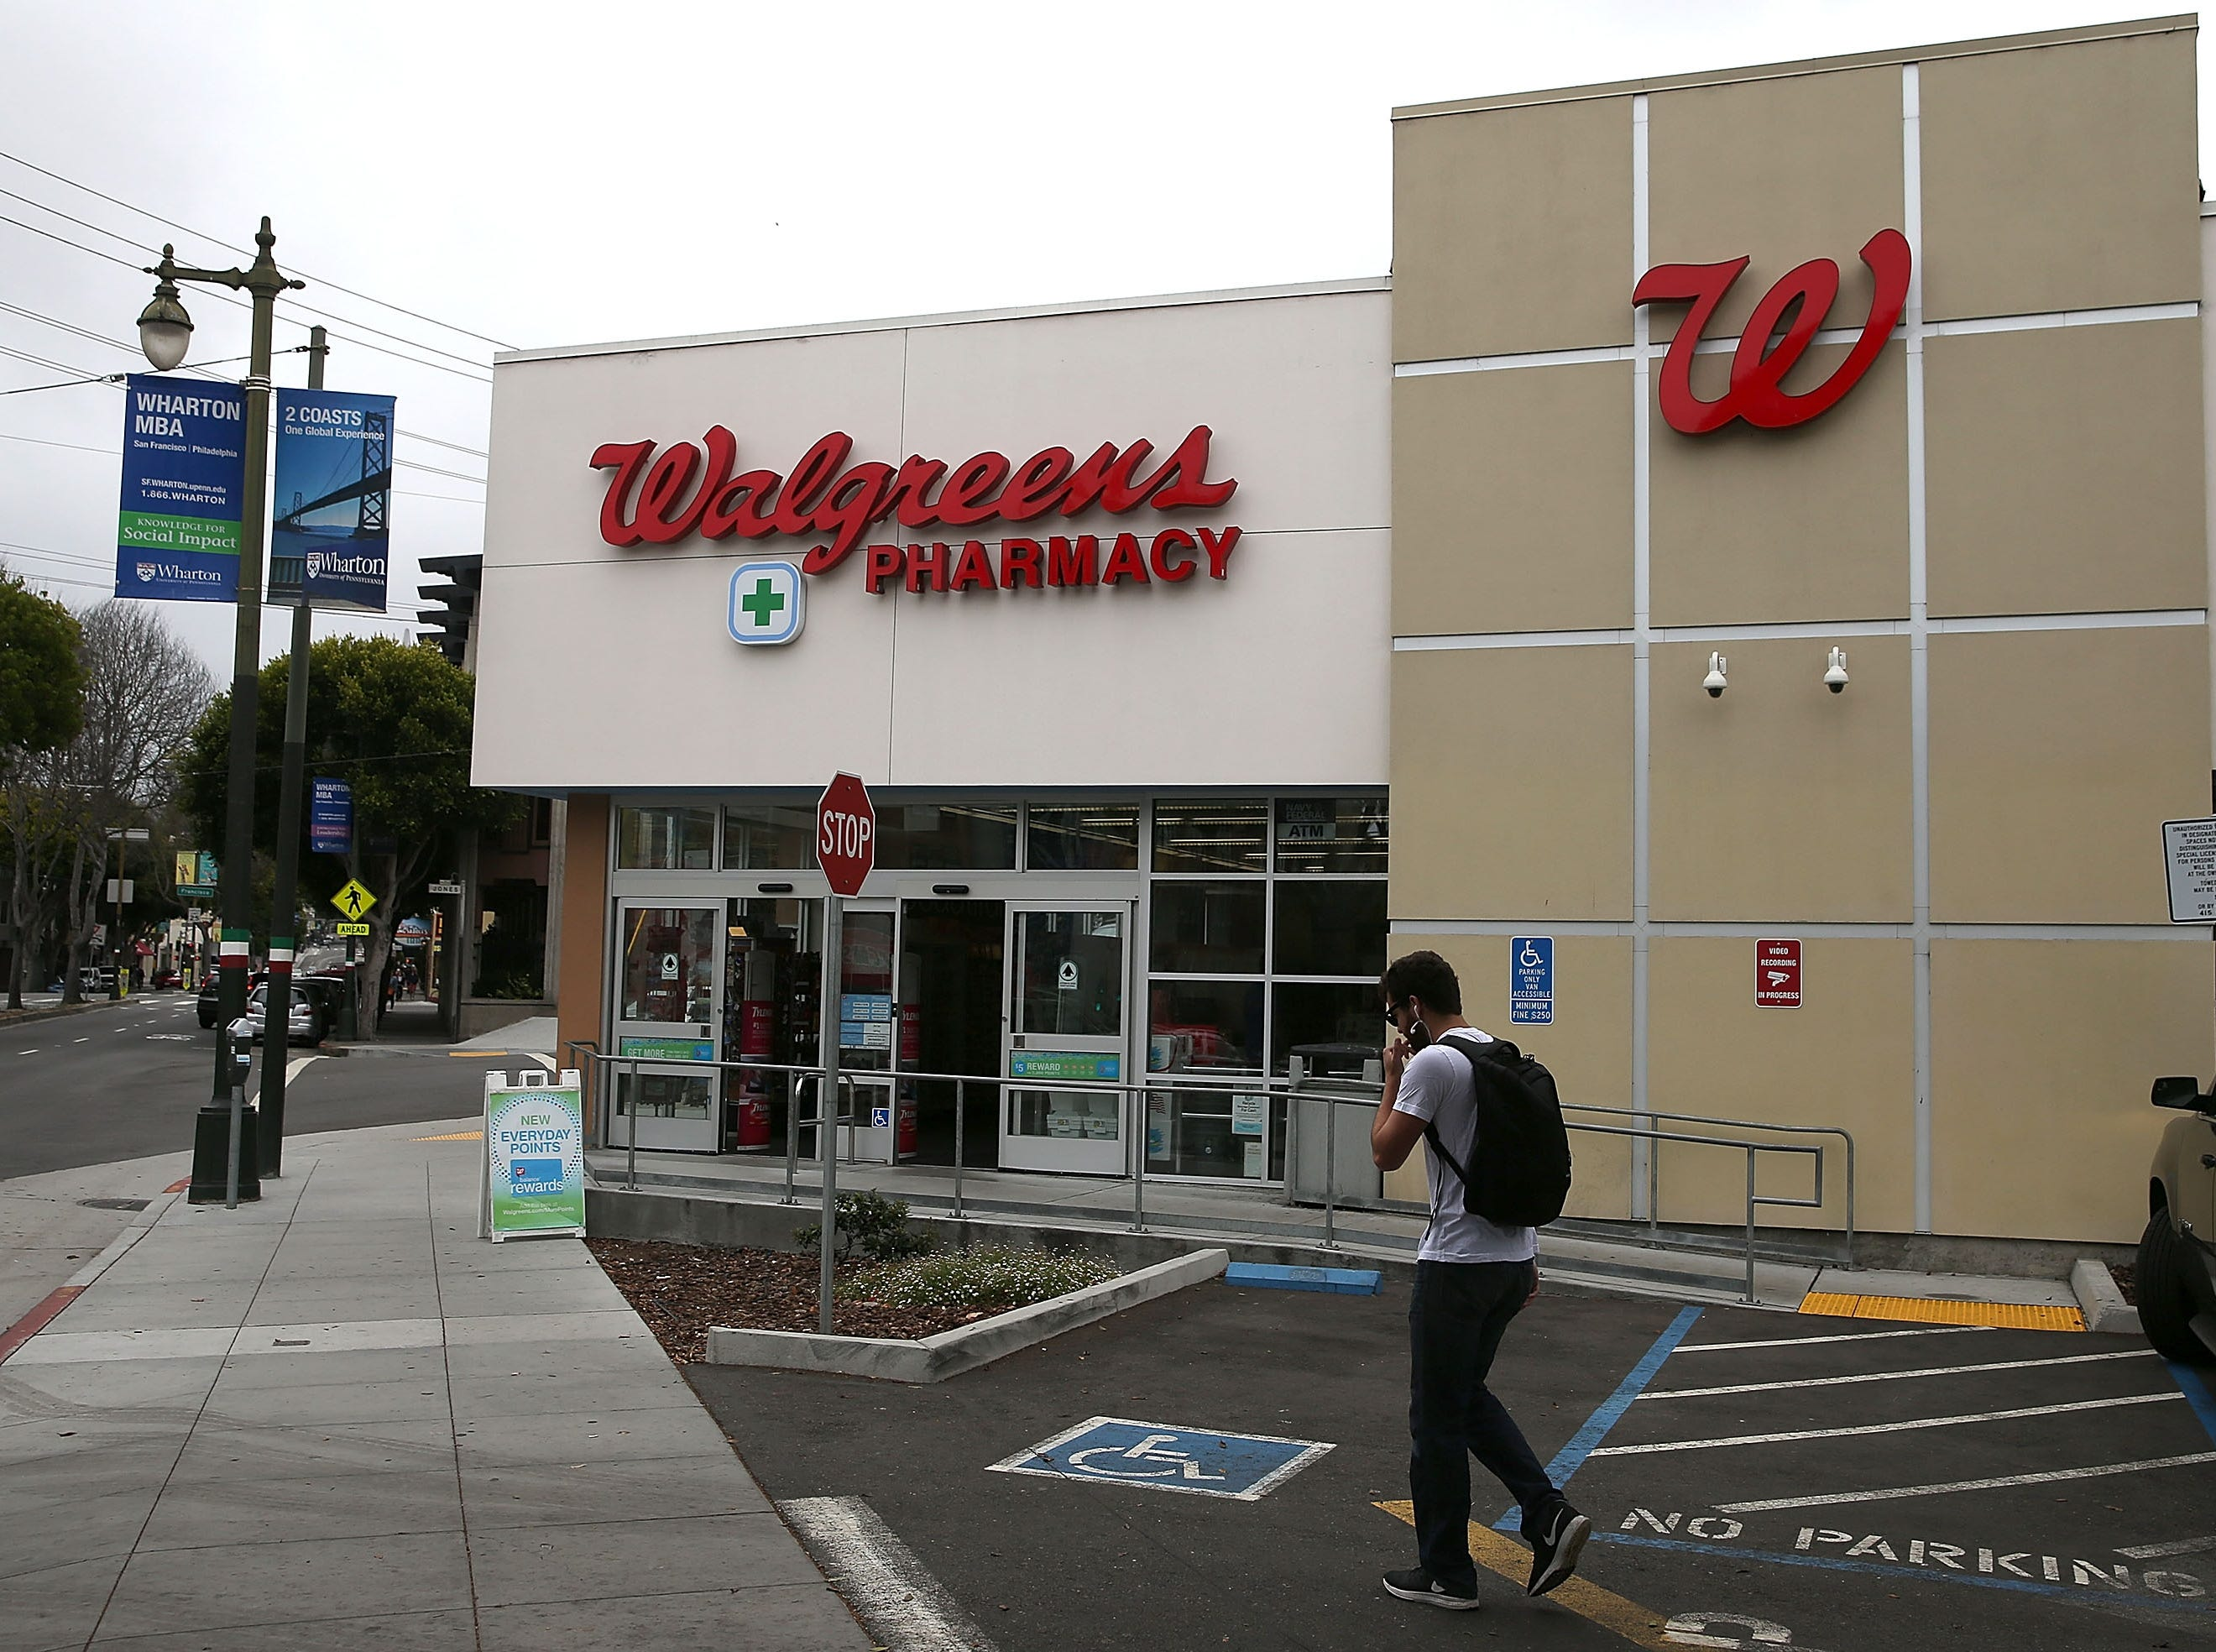 Walgreens,hiring 110. Thecompany thatoperates pharmacies and retail centers has openings ranging from pharmacy technicians to sales associates. More info:walgreens.jobs.